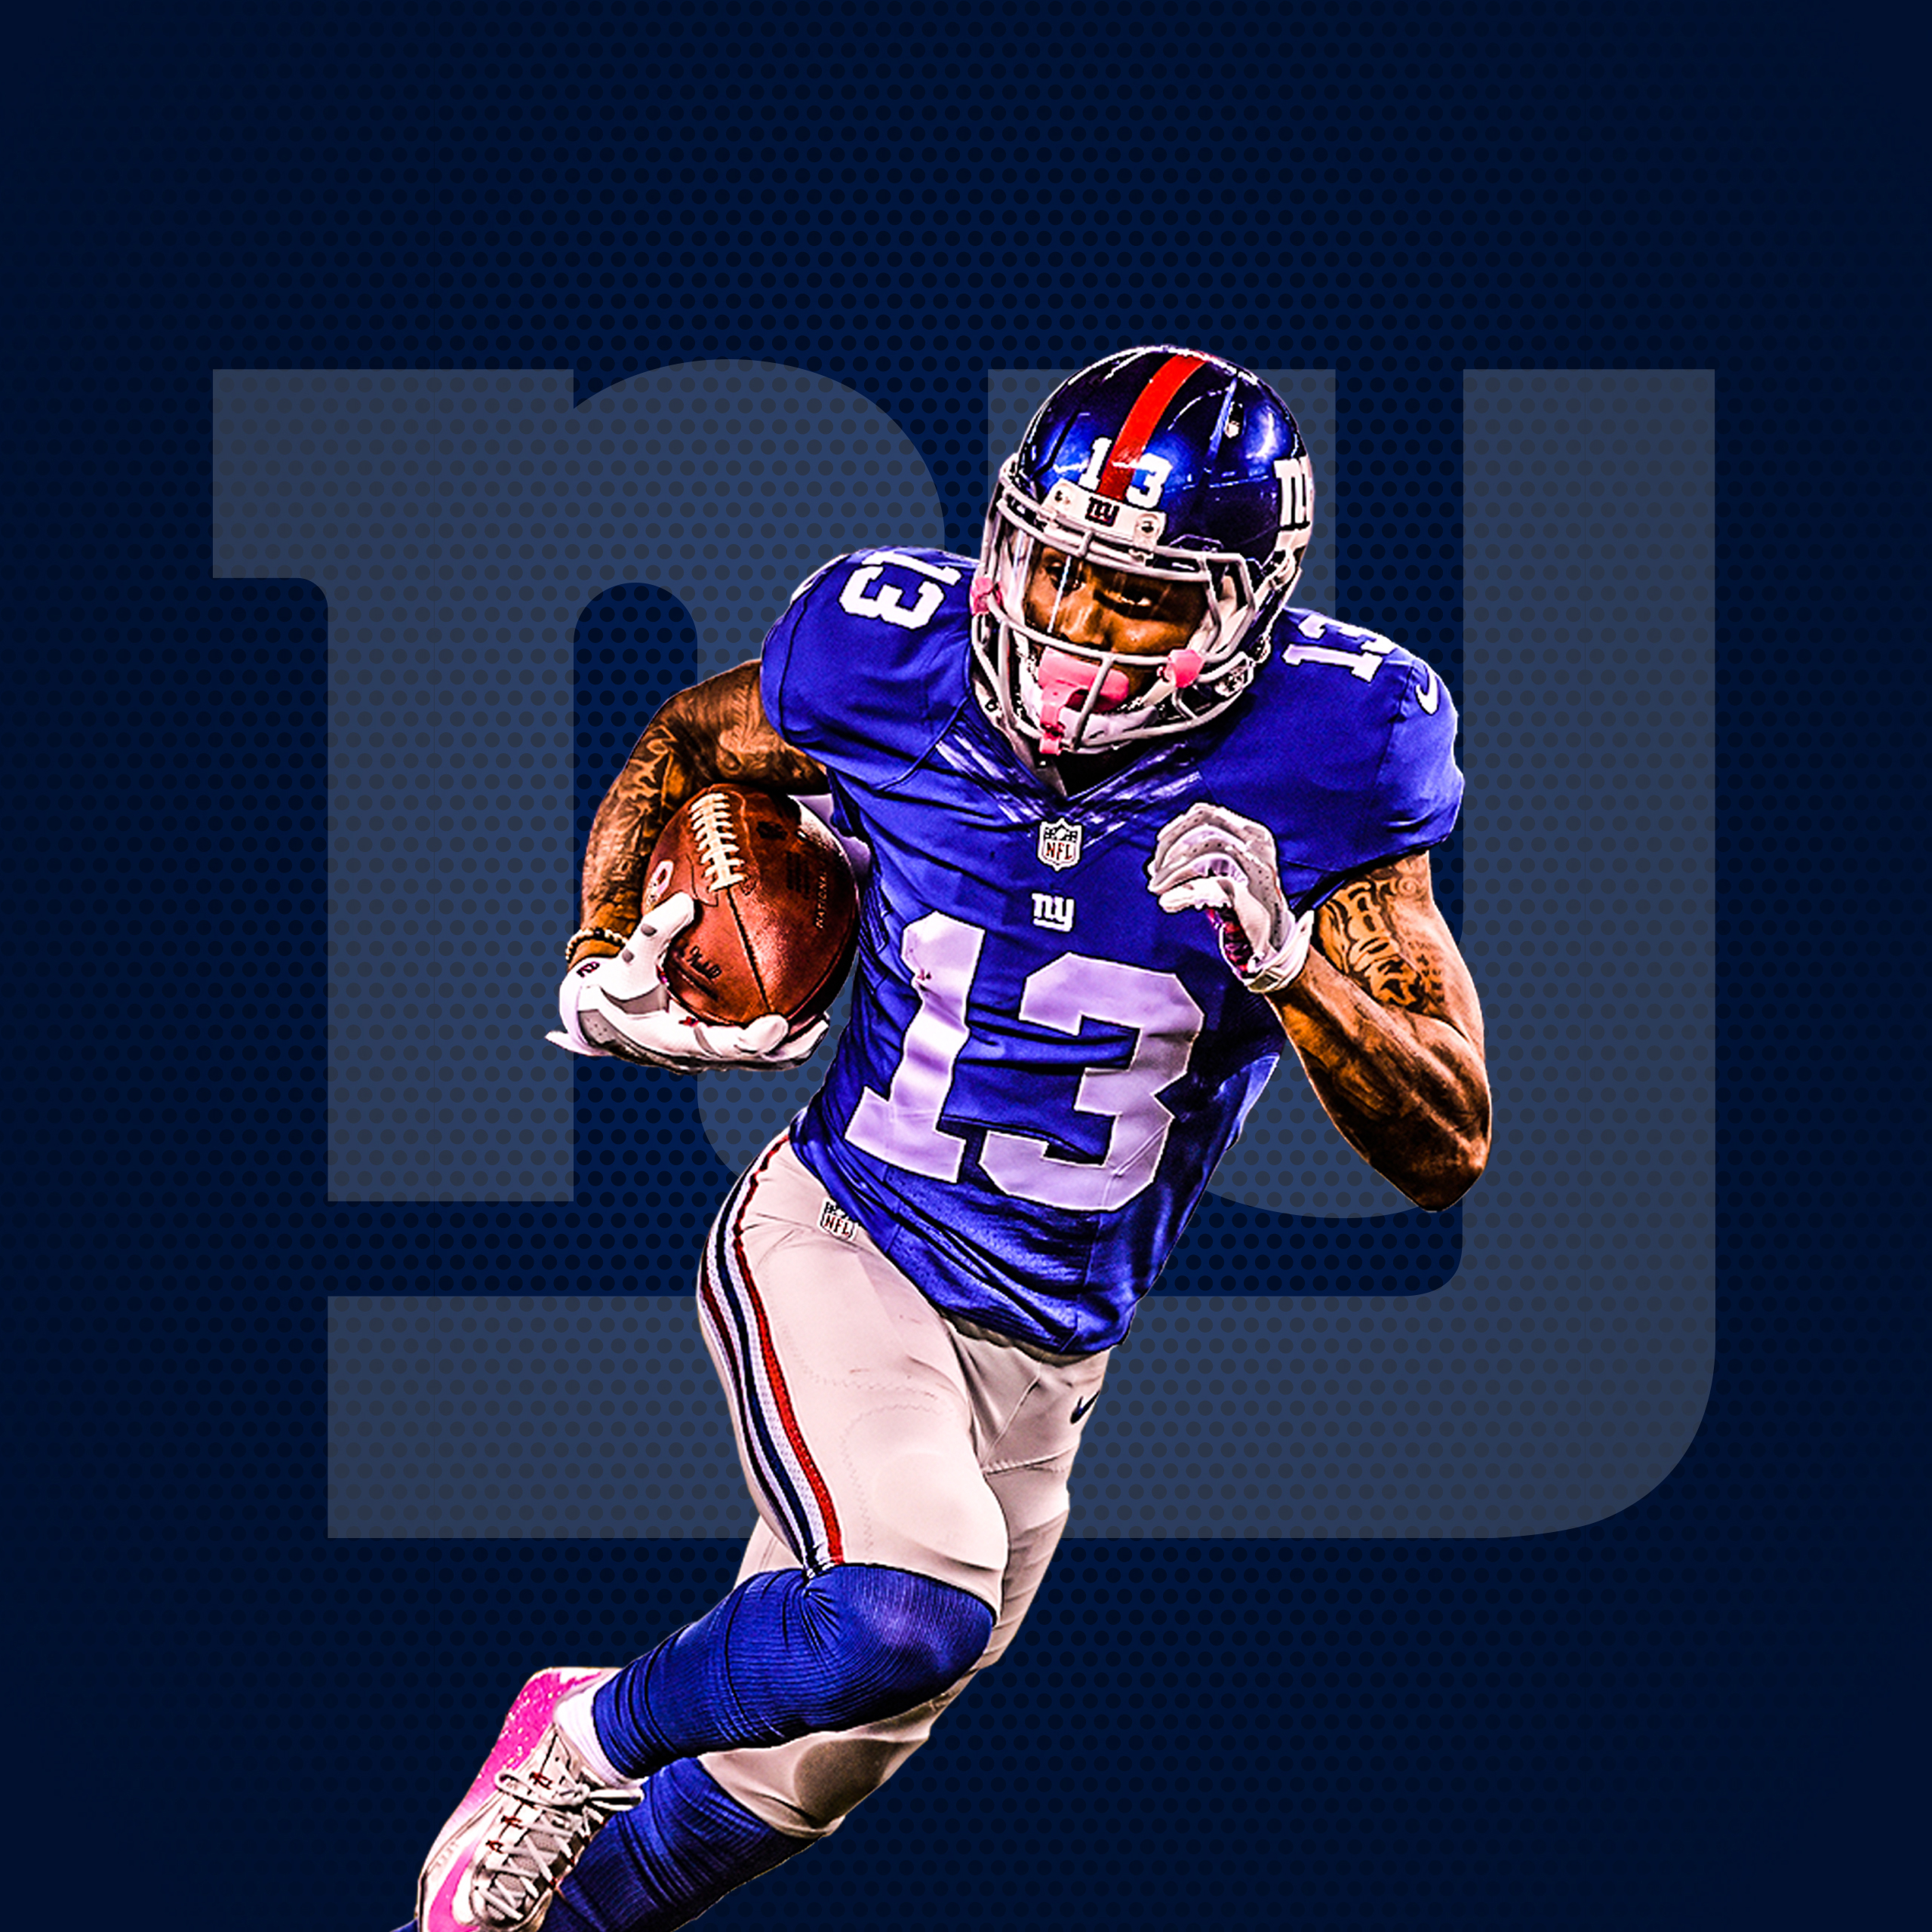 odell beckham jr real 3d wallpaper